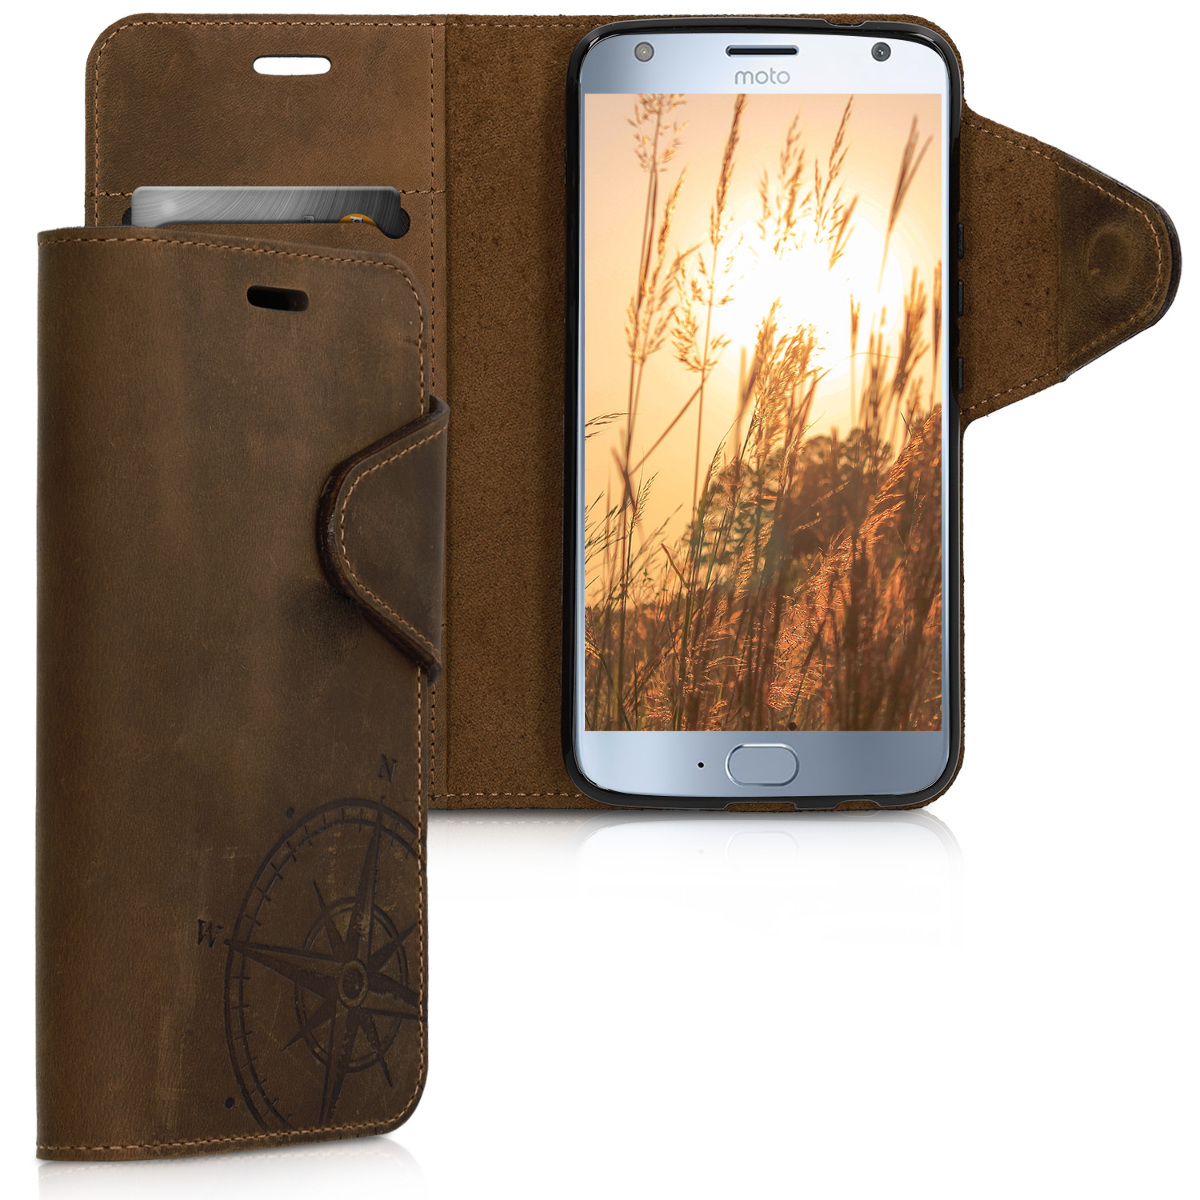 Kalibri Θήκη - Πορτοφόλι Motorola Moto X4 - Brown Compass (46703.01)